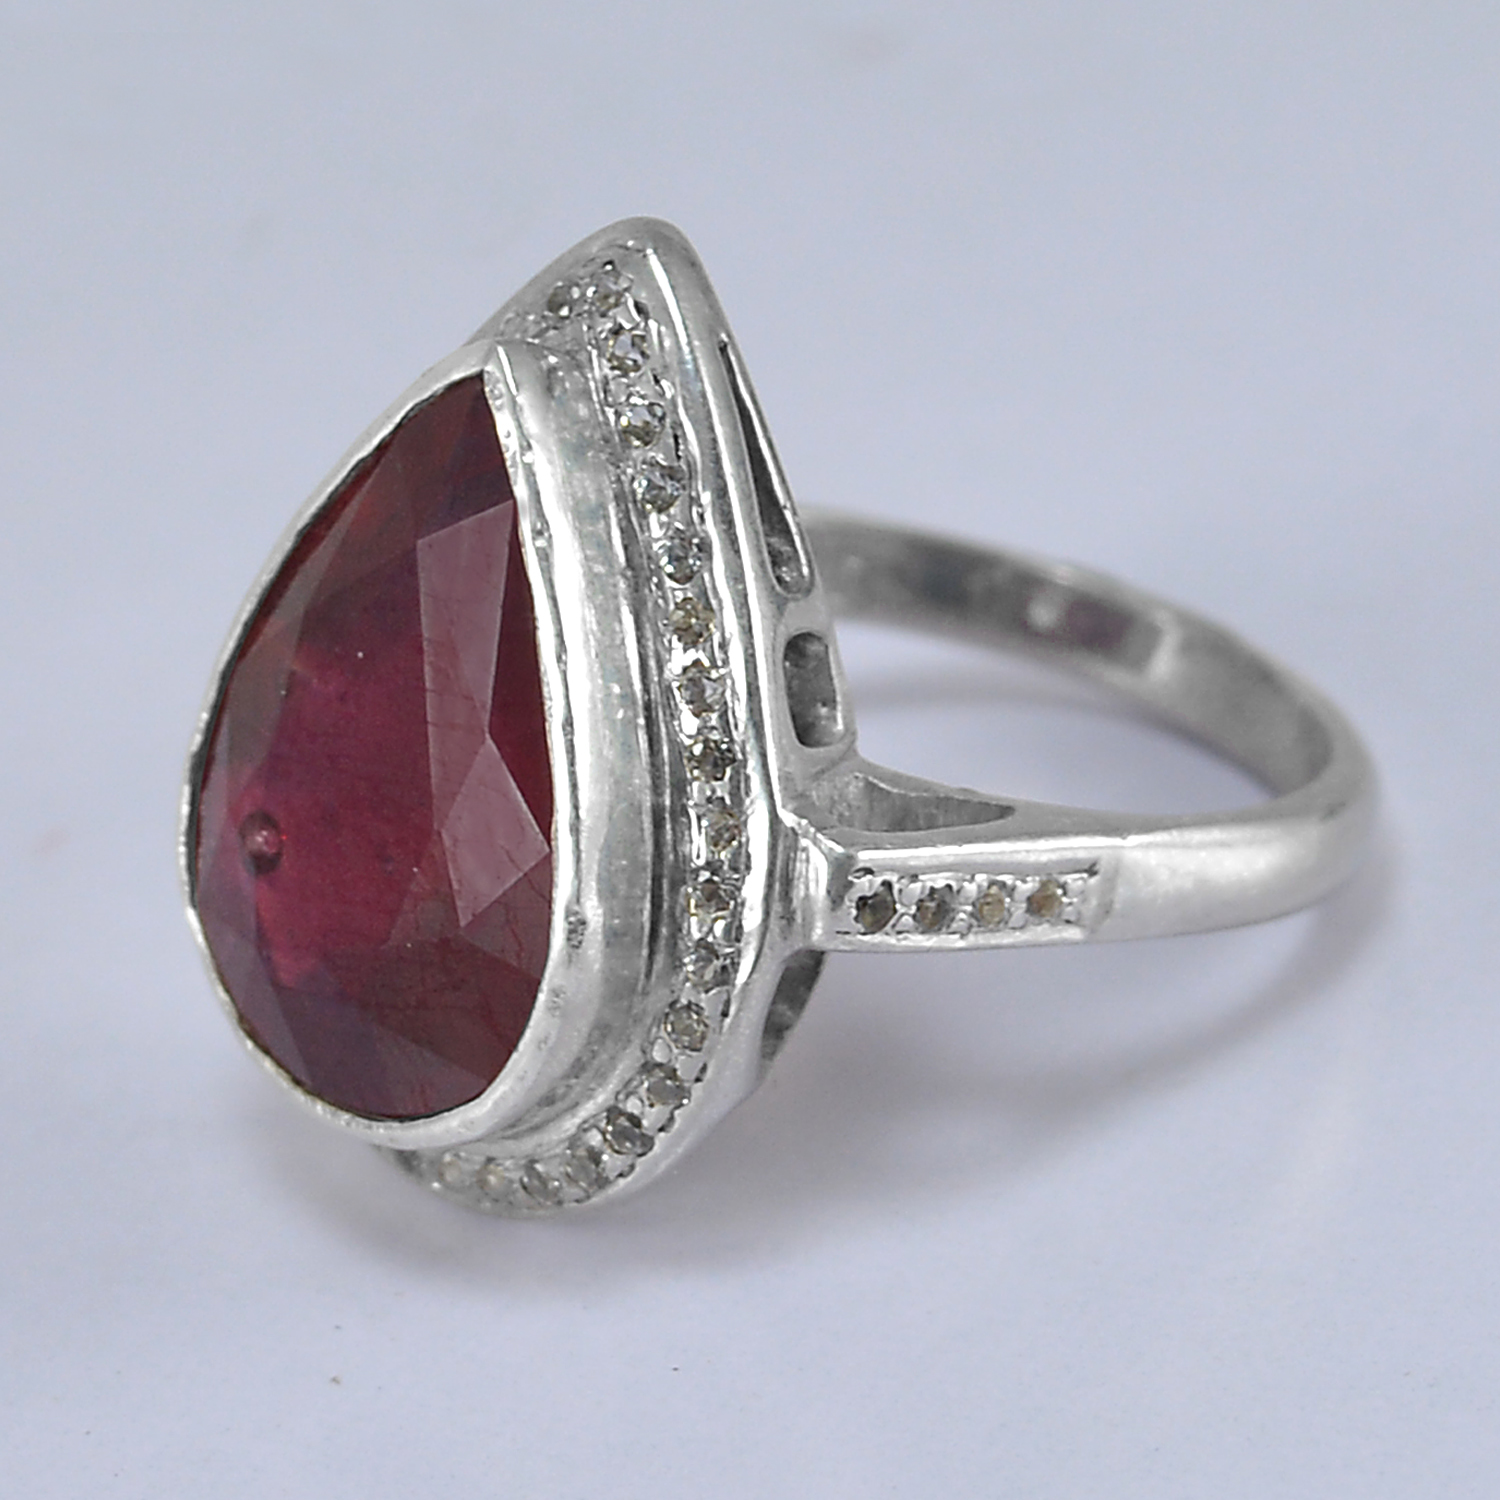 Jaipur Rajasthan India Ruby Gemstone 925 Sterling Silver Ring Sz 6 Handmade Jewelry Manufacturer